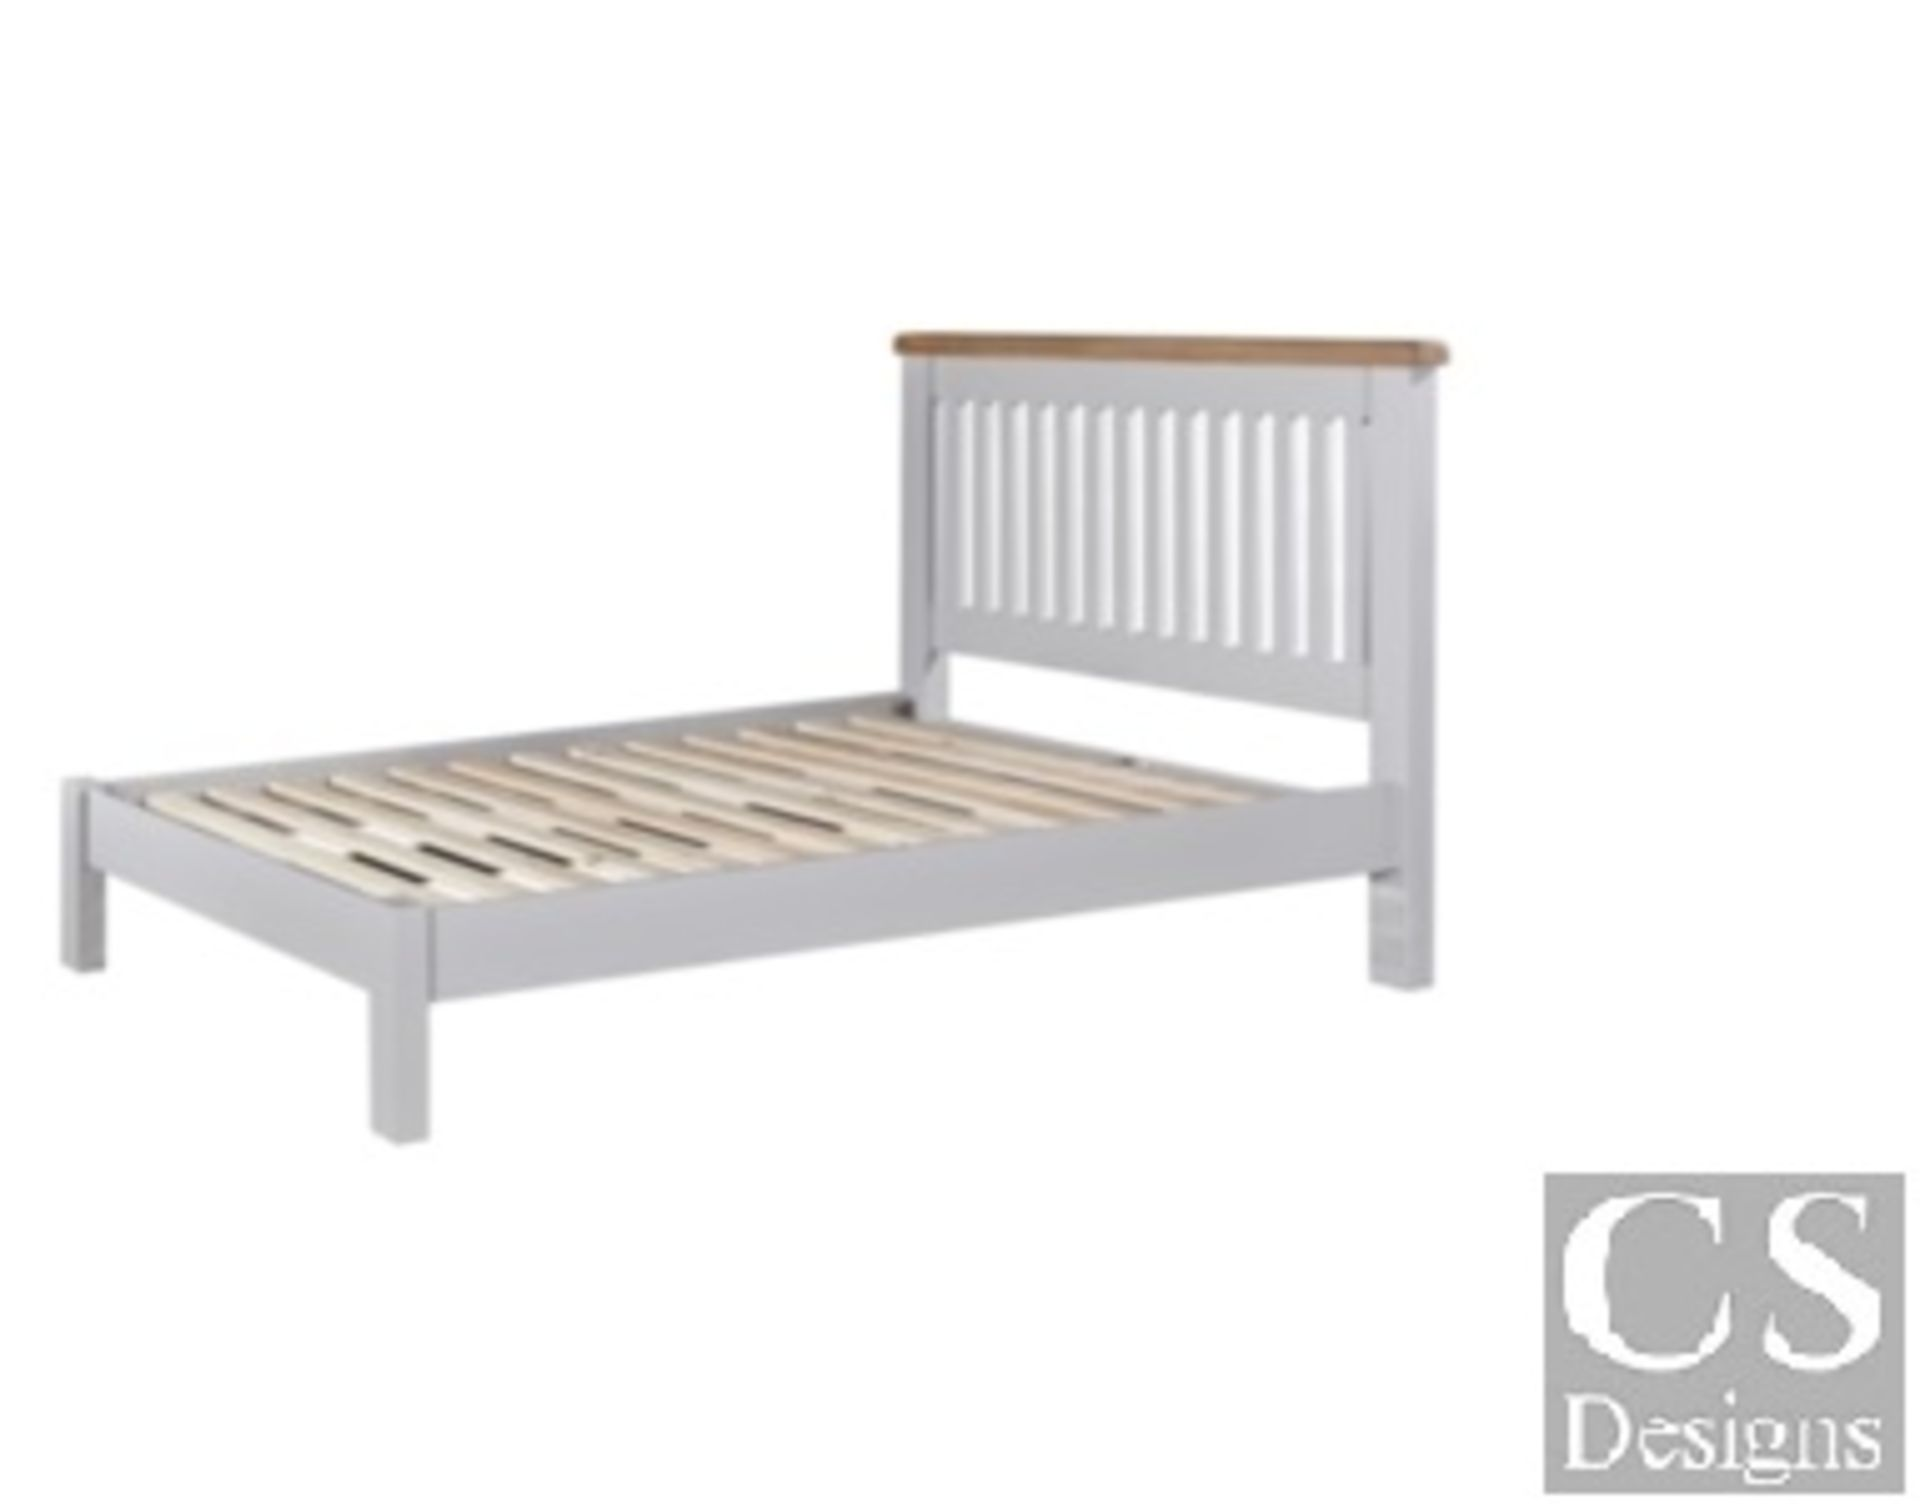 """+ VAT Brand New CS Designs """"Daylesford"""" King Size Bed Frame With Natural Oak Tops And Solid - Image 3 of 3"""